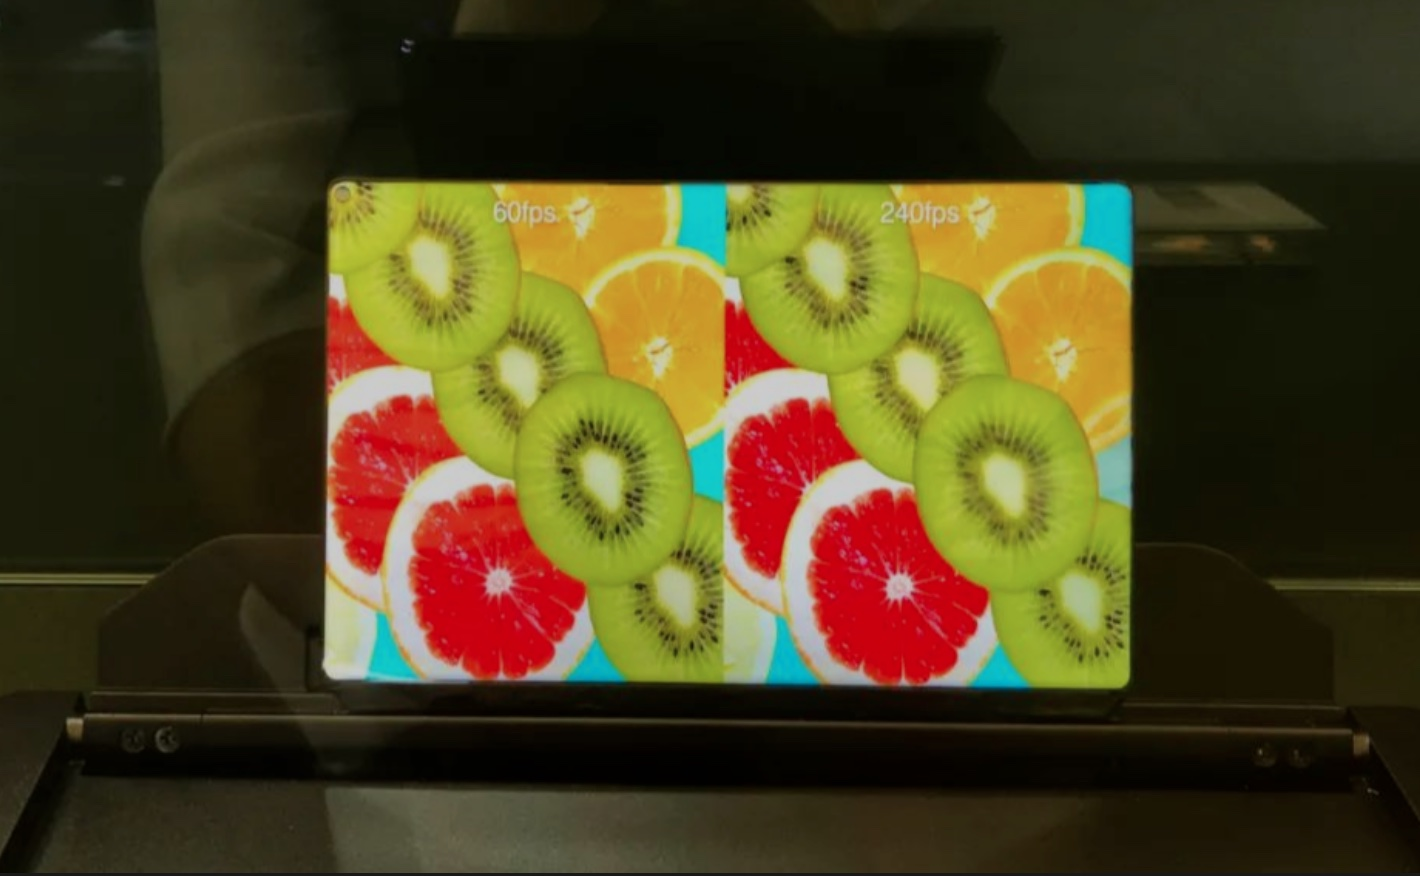 Chinese panel maker demonstrates tablet display with 240 Hz refresh rate-cnTechPost